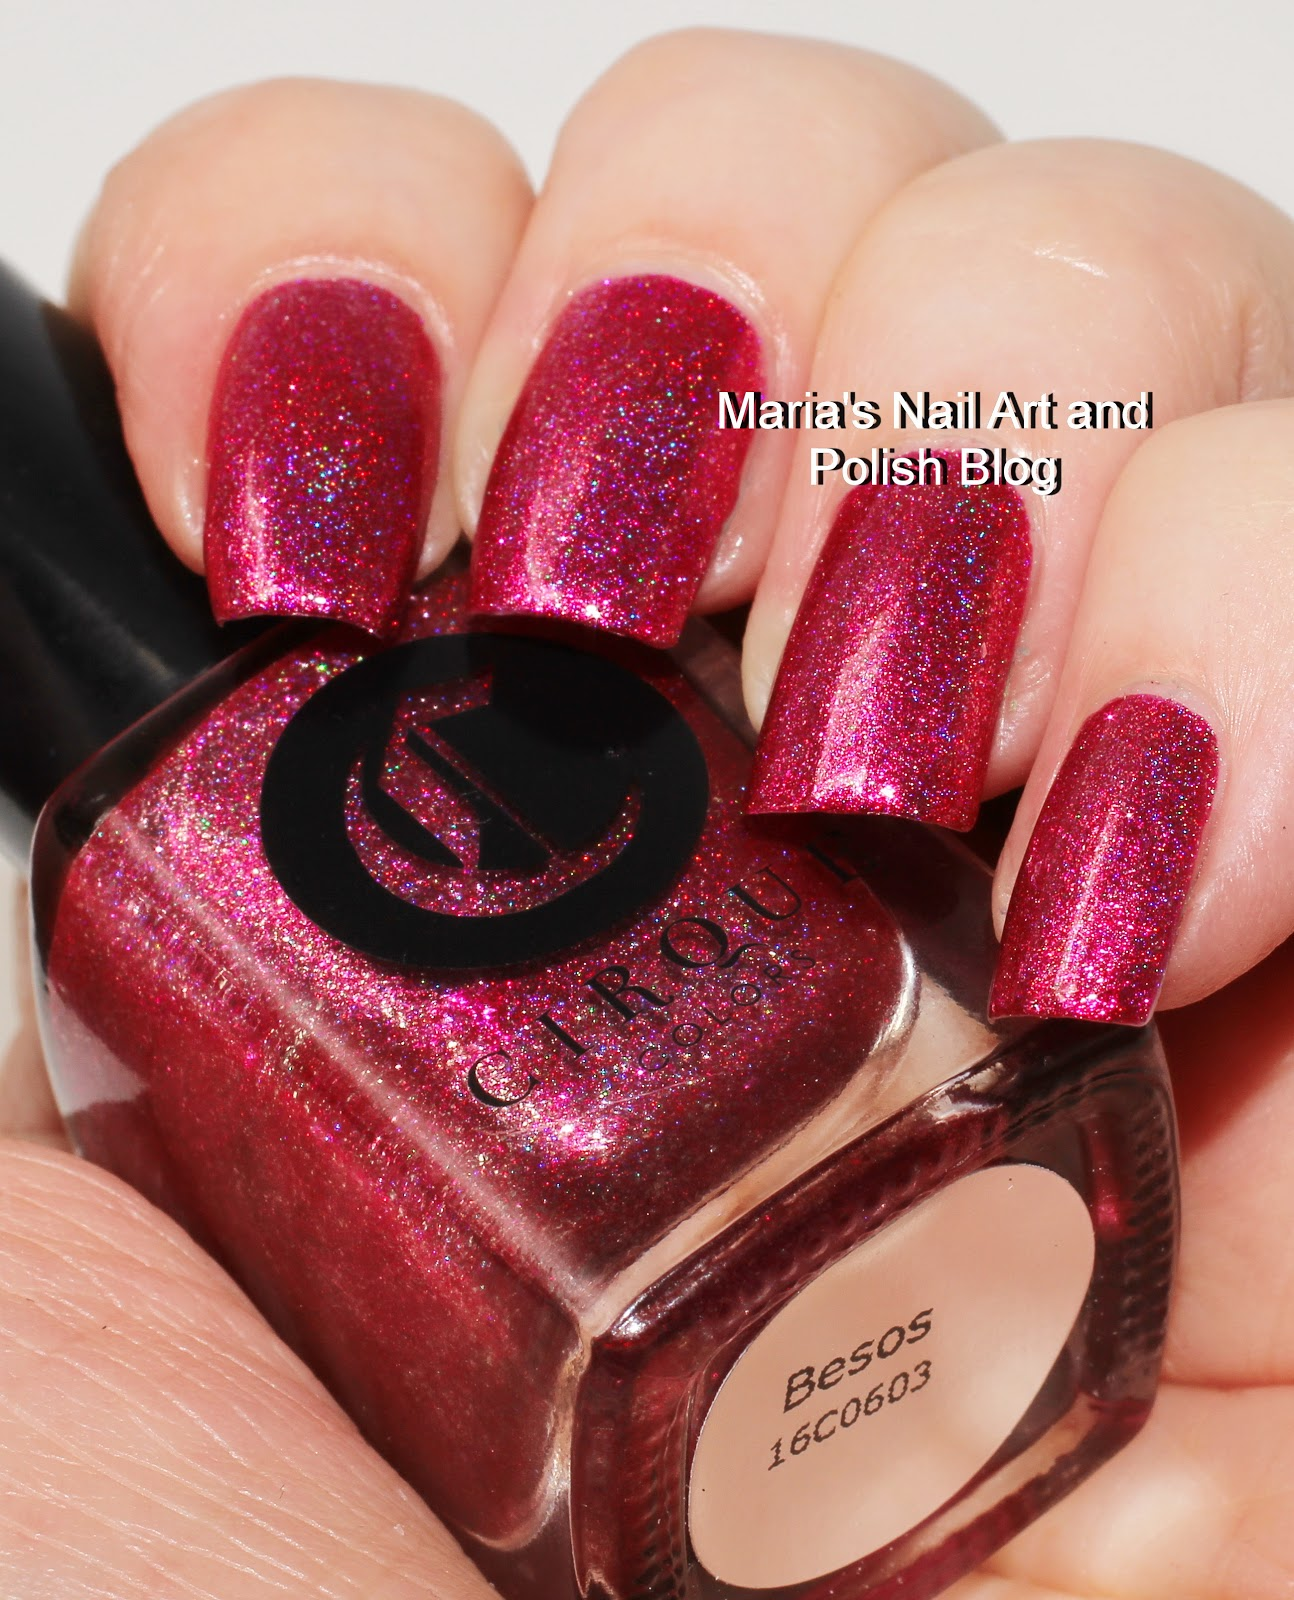 Marias Nail Art And Polish Blog Flushed With Stripes And: Marias Nail Art And Polish Blog: Cirque Besos Swatches